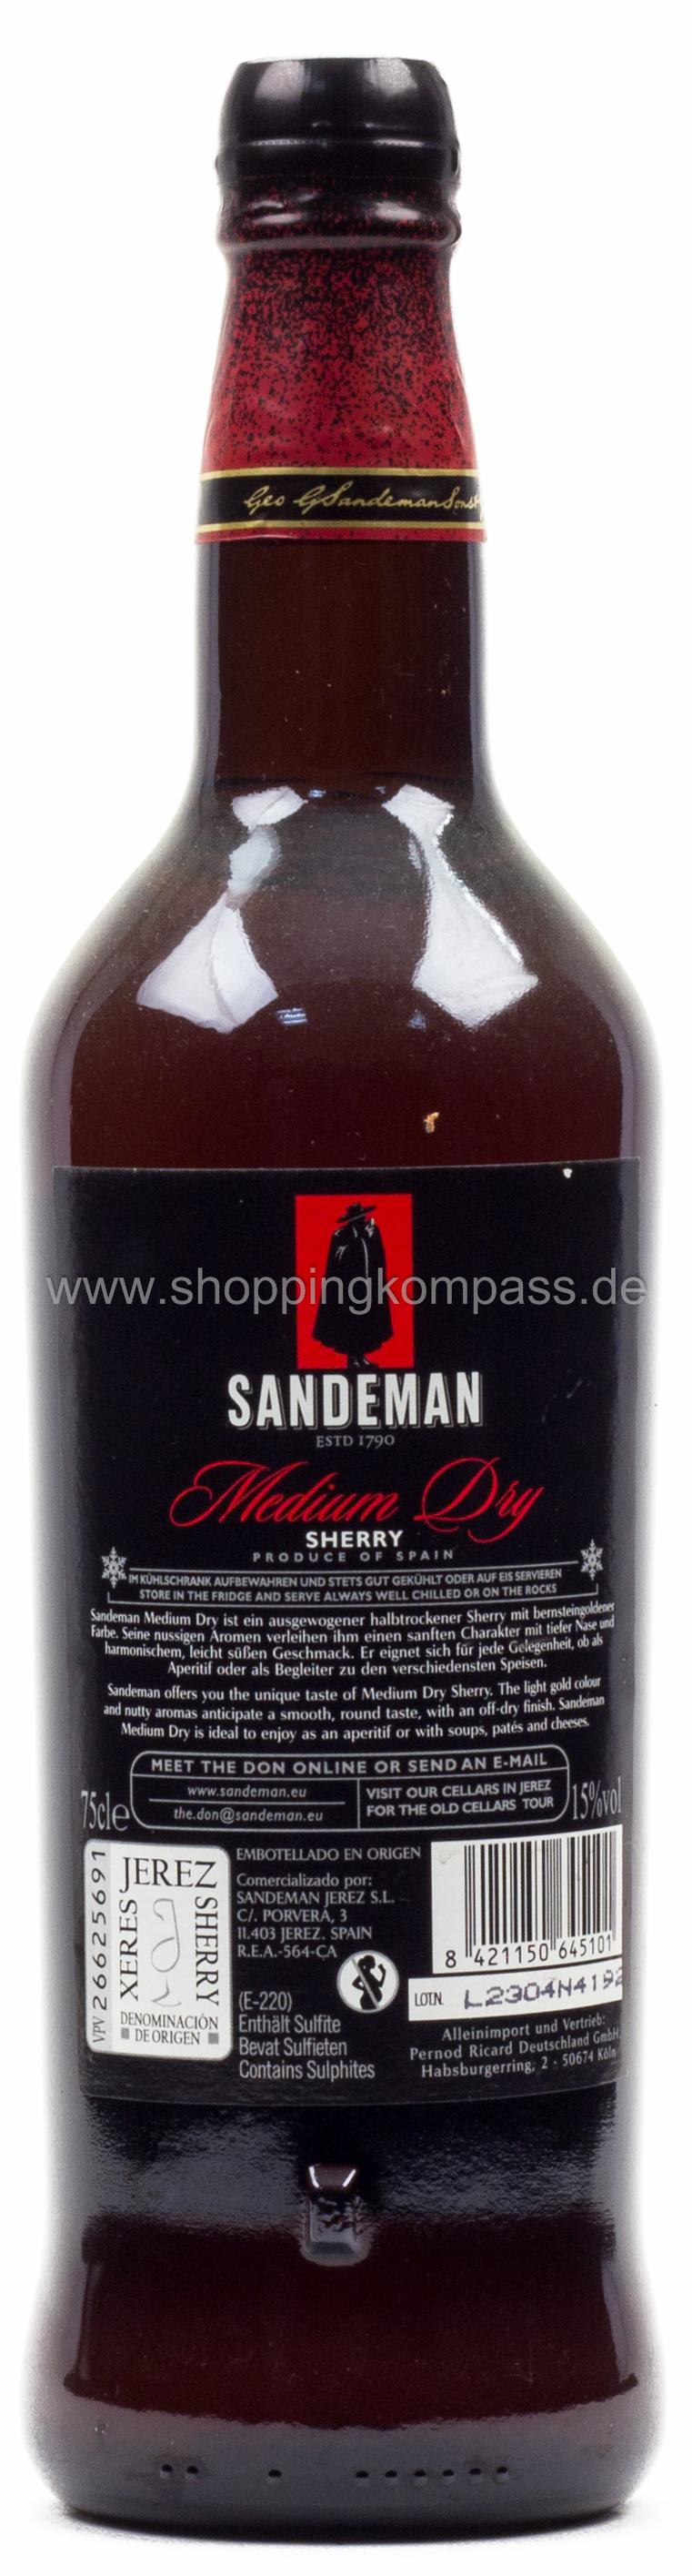 Sandeman Medium Dry Sherry 0,75 l